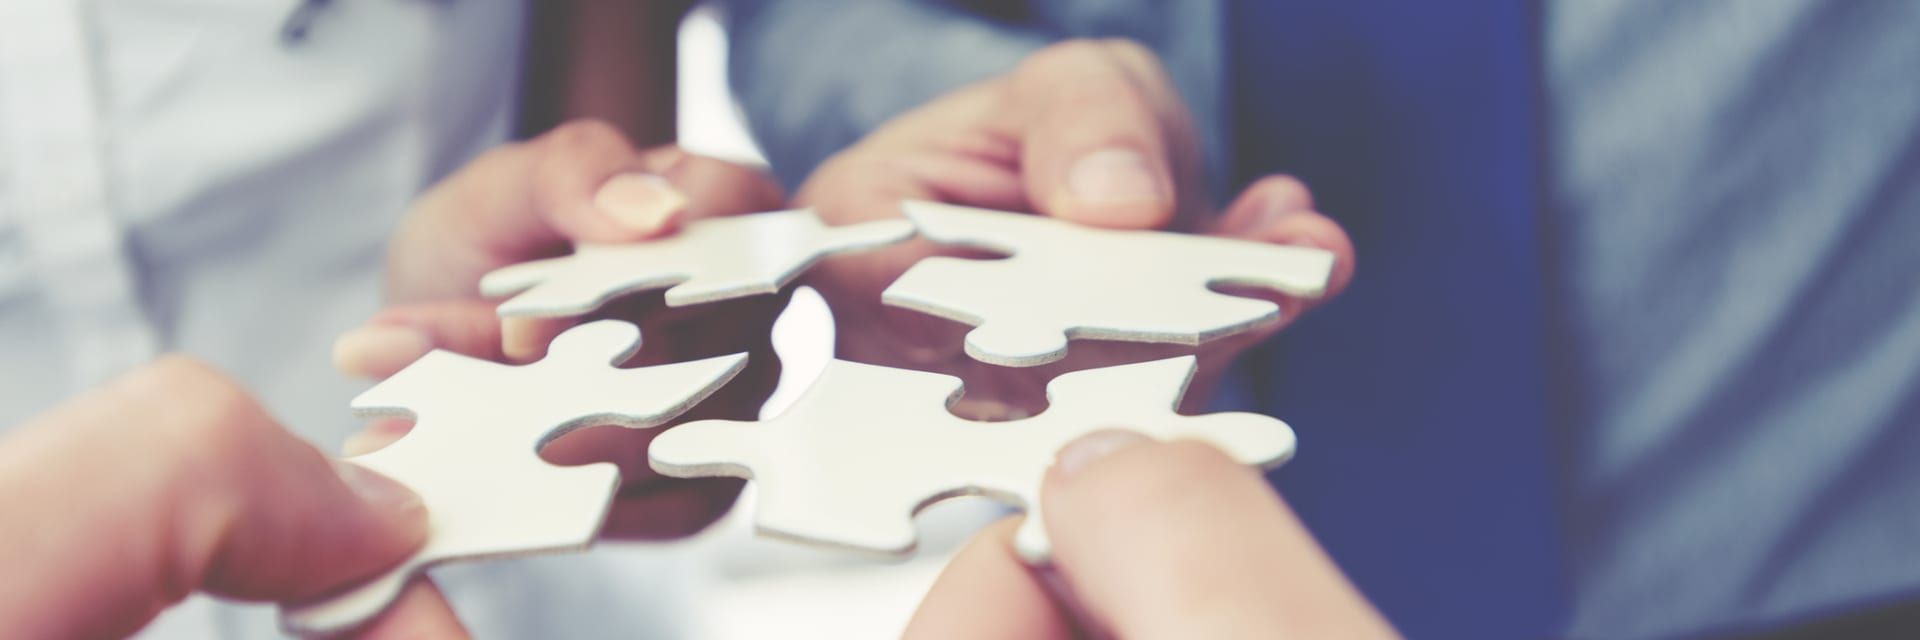 group of people holding puzzle pieces together